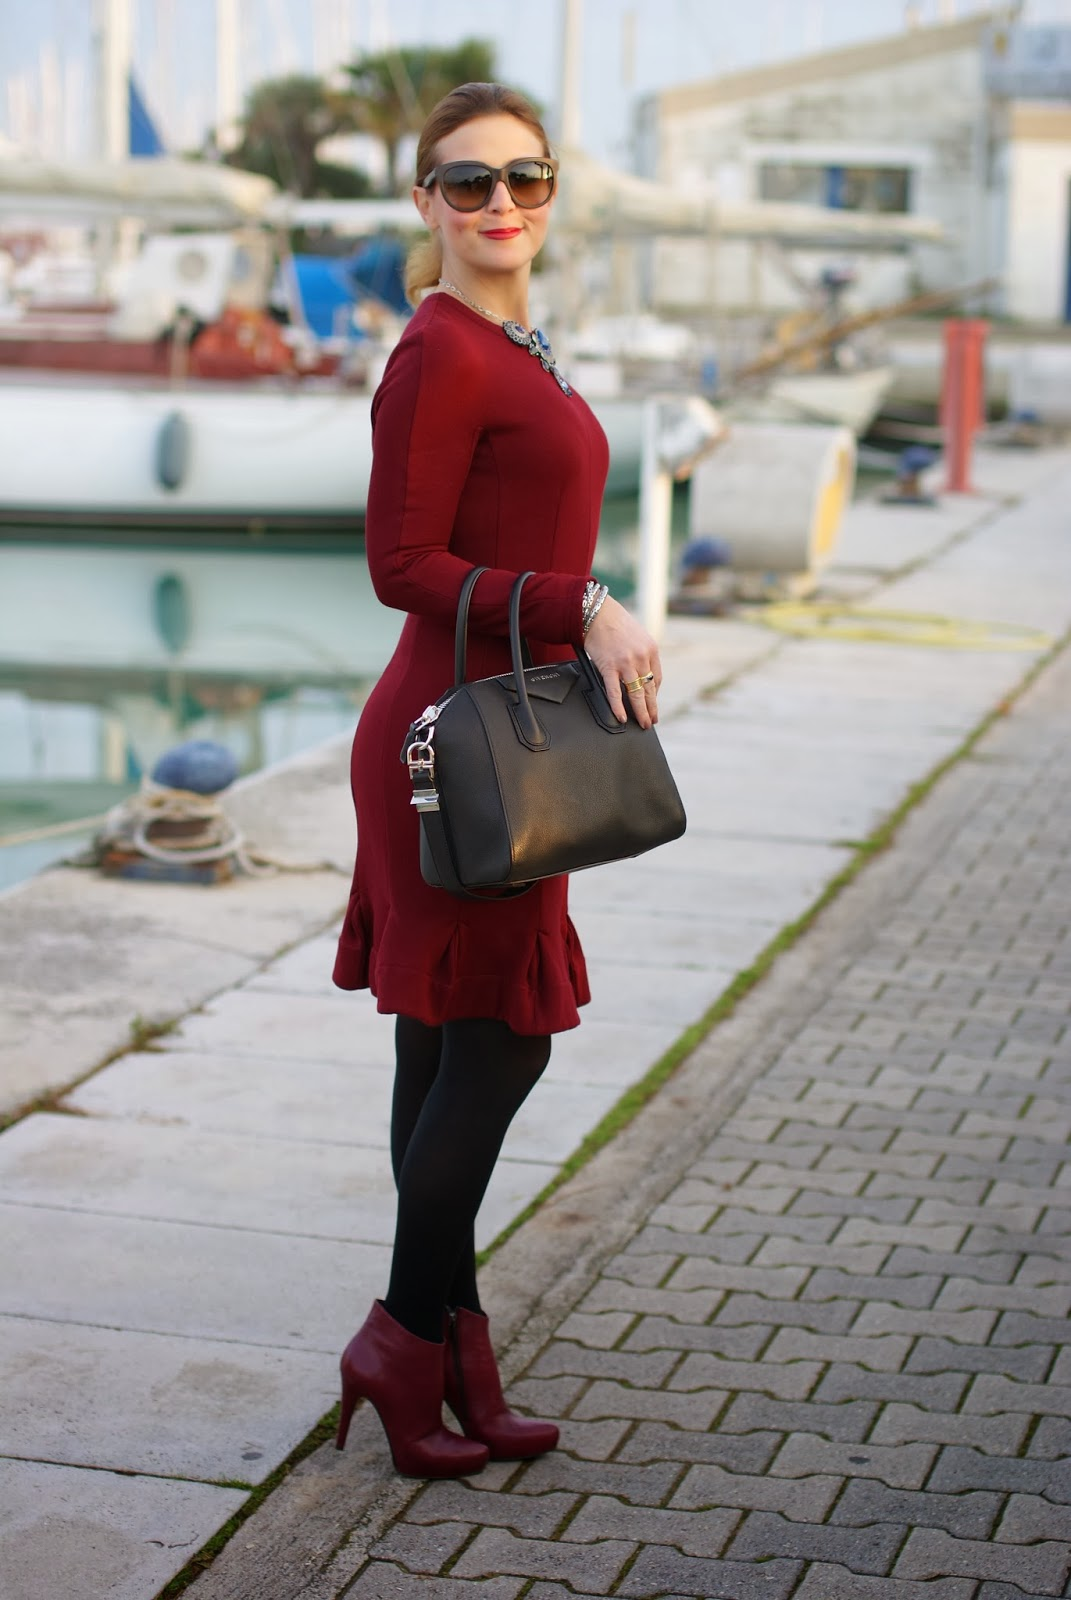 Carven burgundy dress, Givenchy Antigona bag, Icone burgundy boots, Fashion and Cookies, fashion blogger